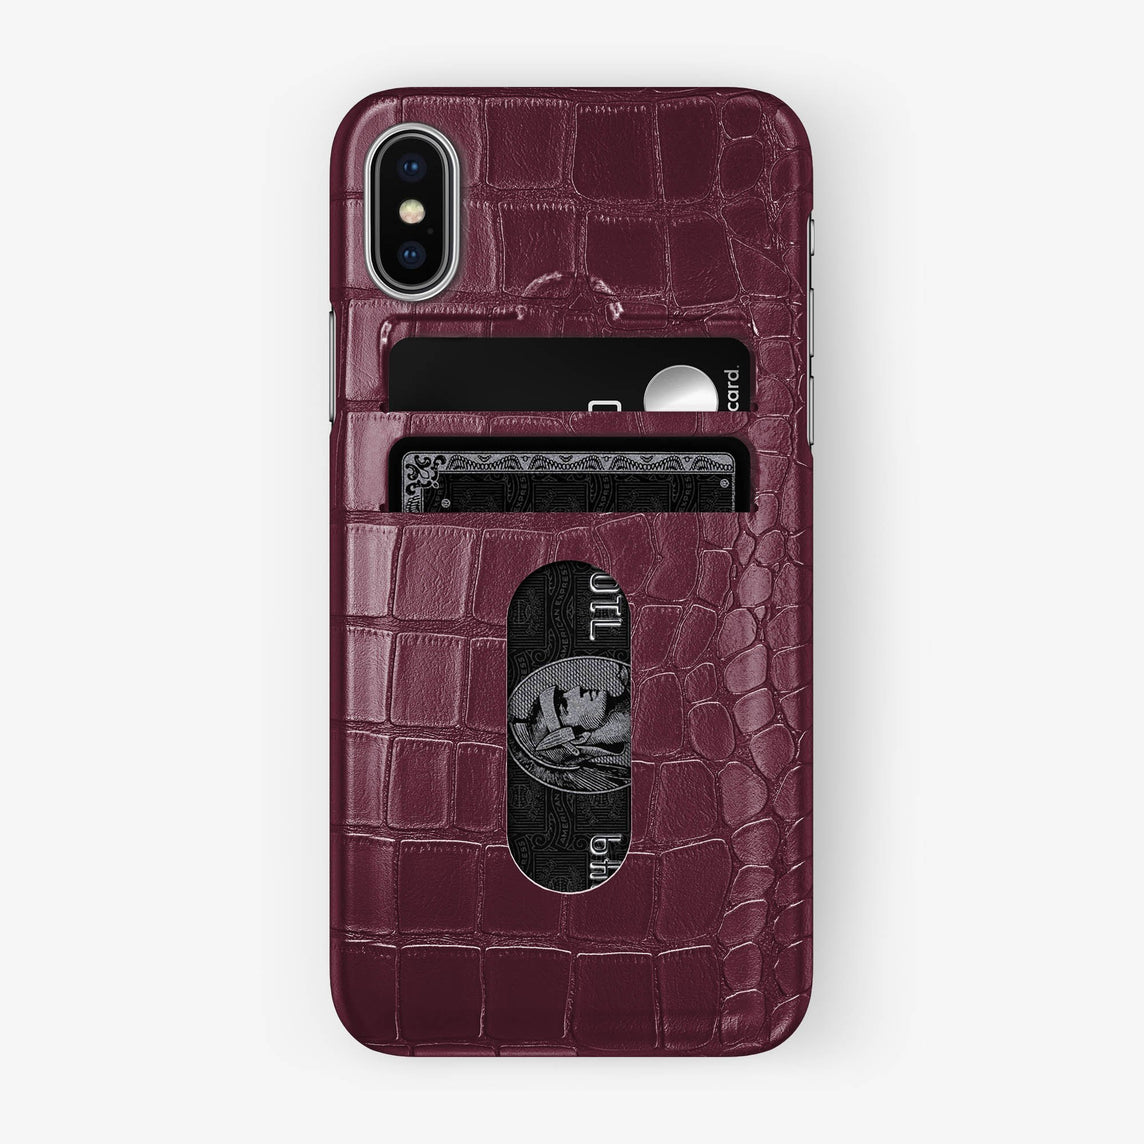 Alligator [iPhone Card Holder Case] [model:iphone-x-case] [colour:burgundy] [finishing:stainless-steel] - Hadoro